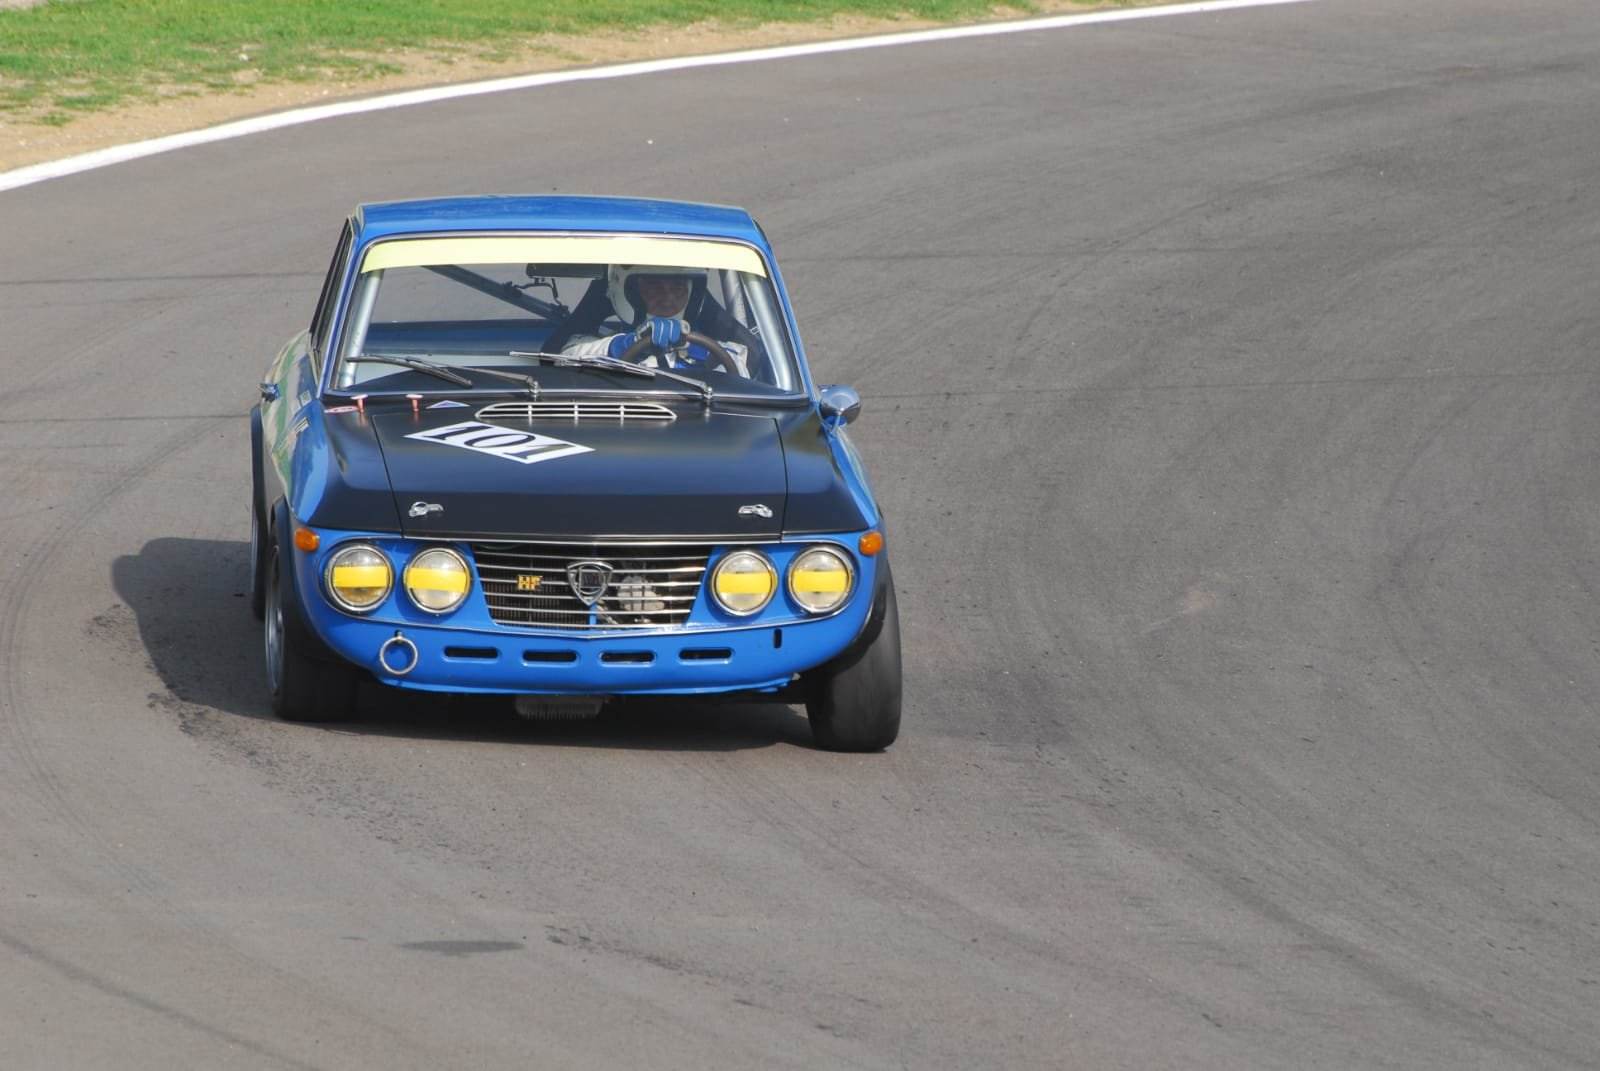 1970 Lancia fulvia rally for race gr4 For Sale (picture 1 of 4)